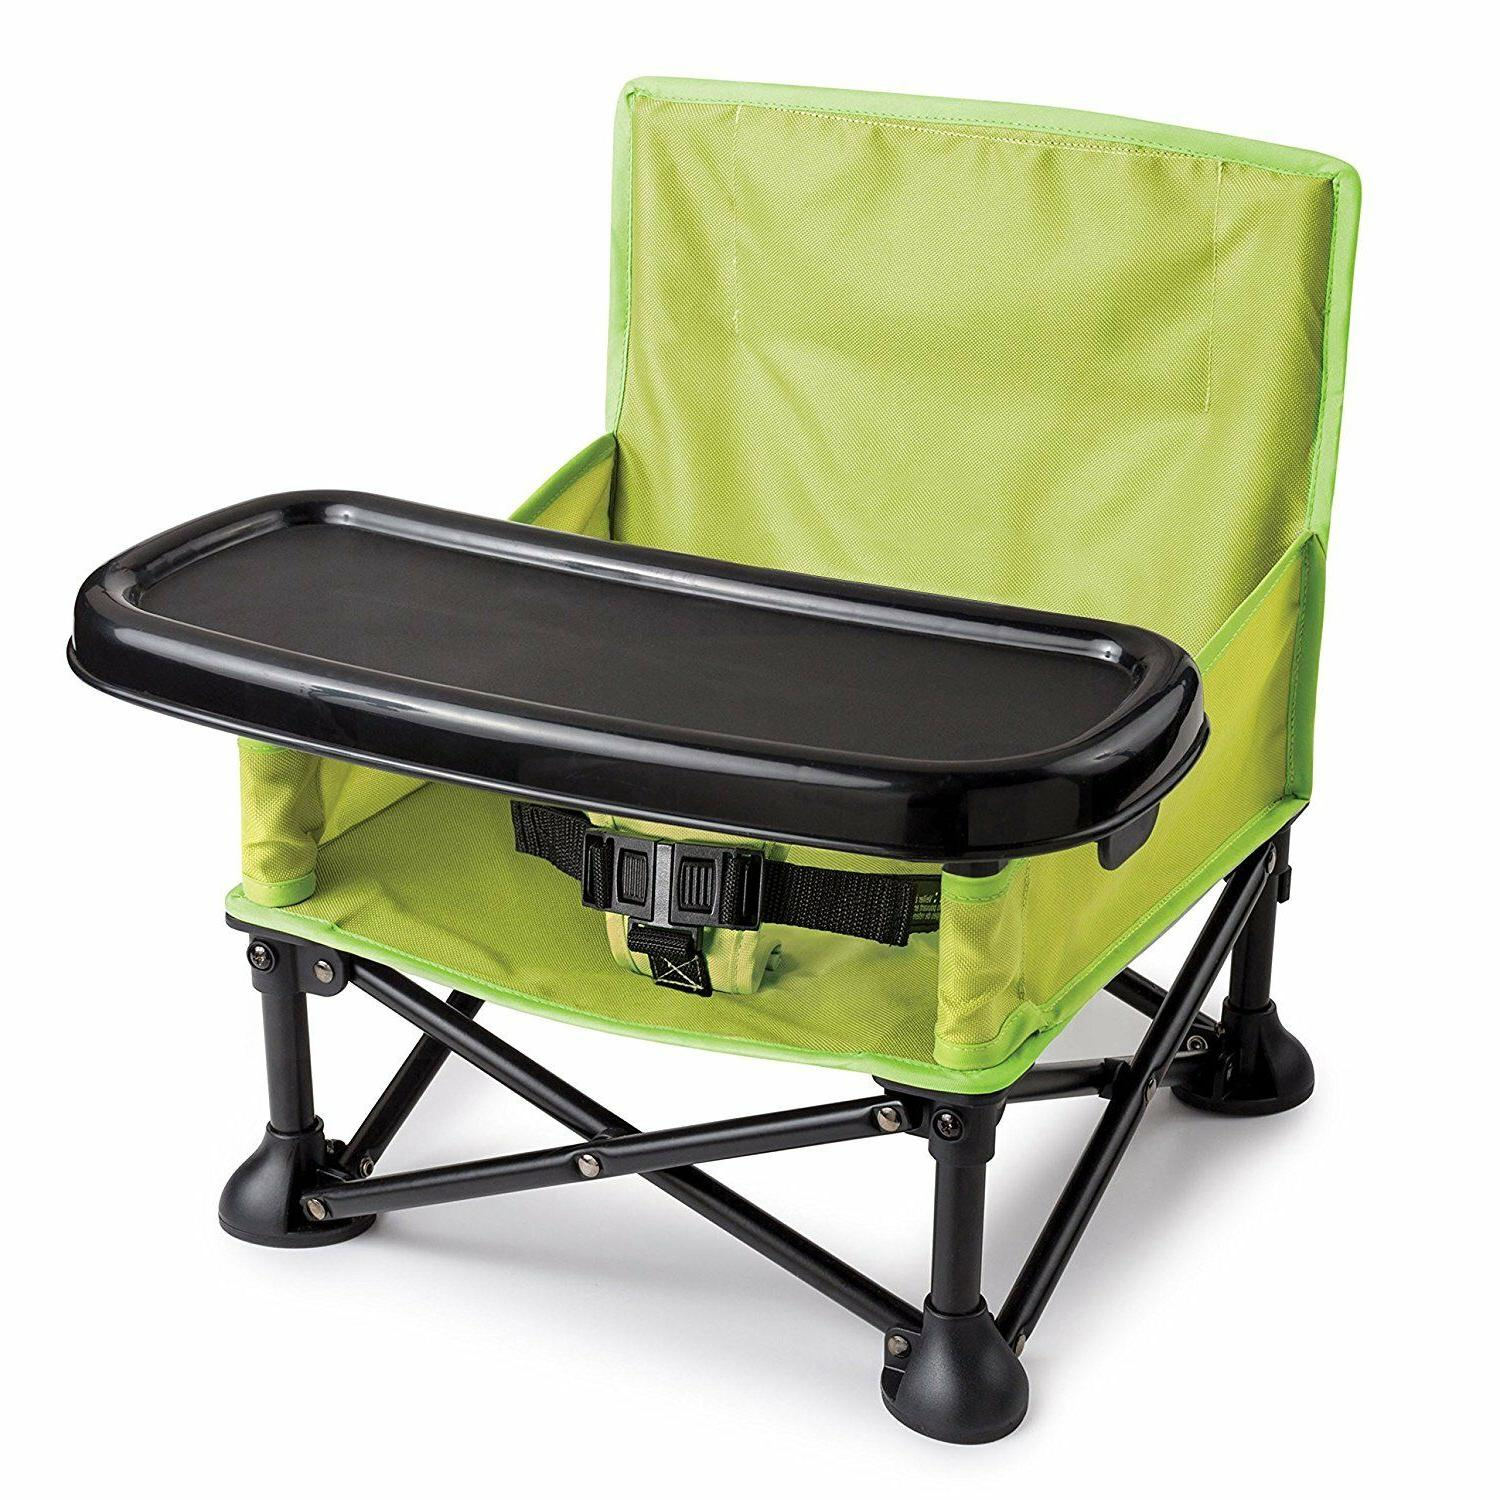 Portable Folding Booster Seat Hook on Pop Sit Green High Cha